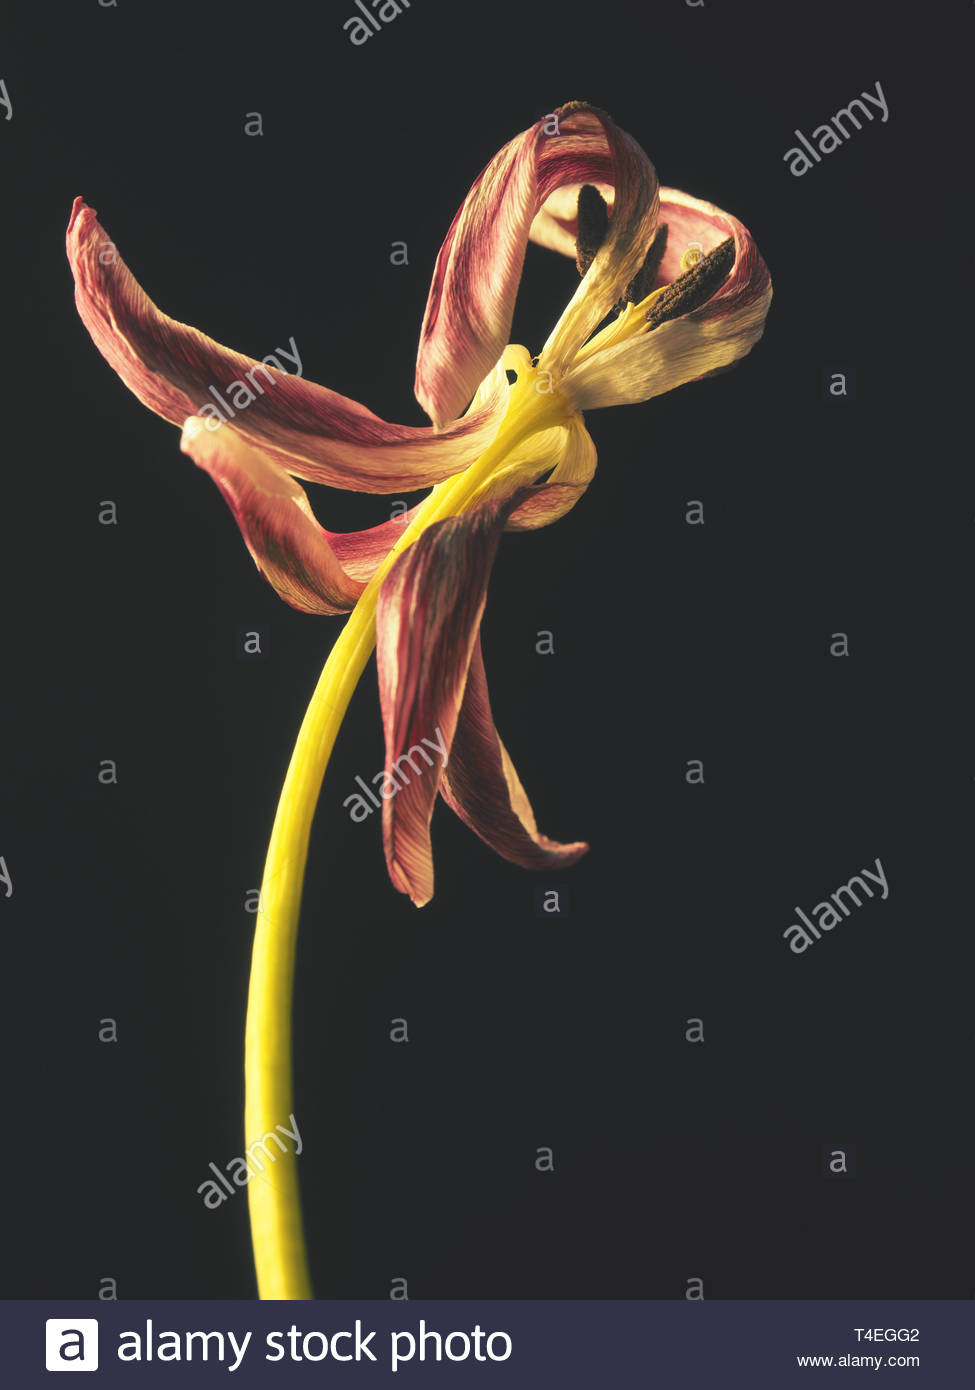 Old withered purple tulip on a dark background, Past beauty with abstract fragility - Stock Image